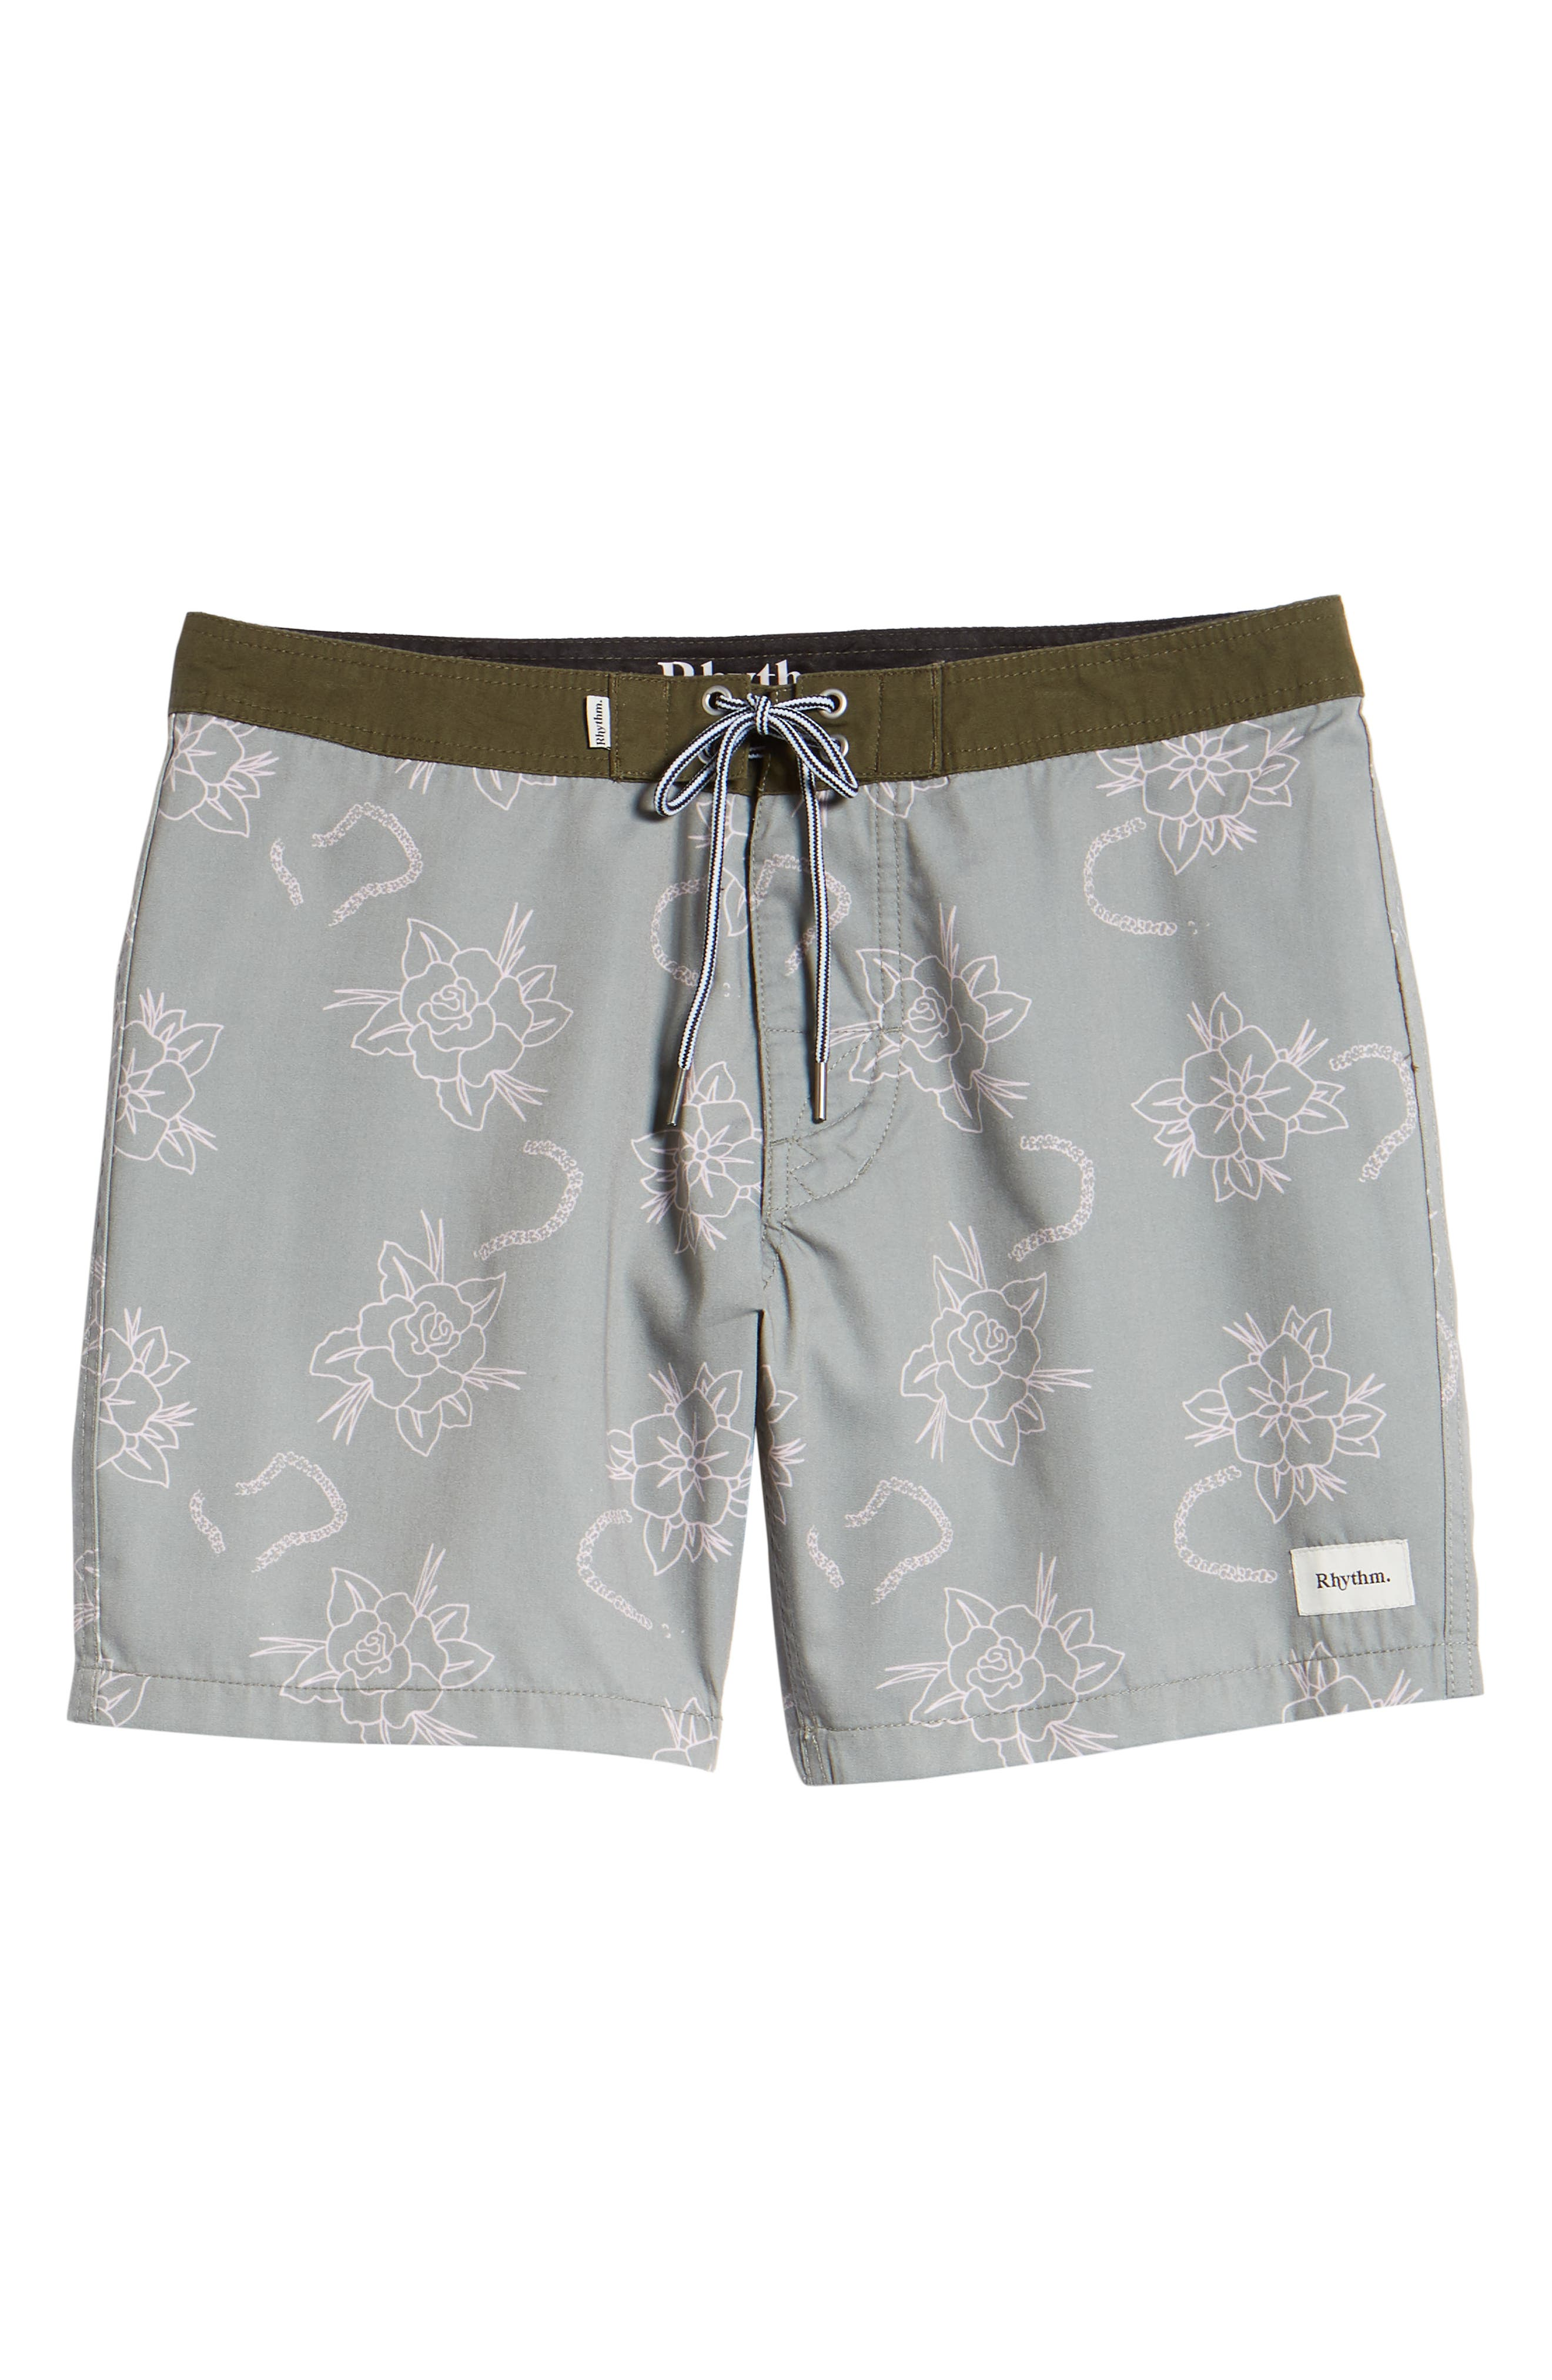 Island Swim Trunks,                             Alternate thumbnail 6, color,                             OLIVE